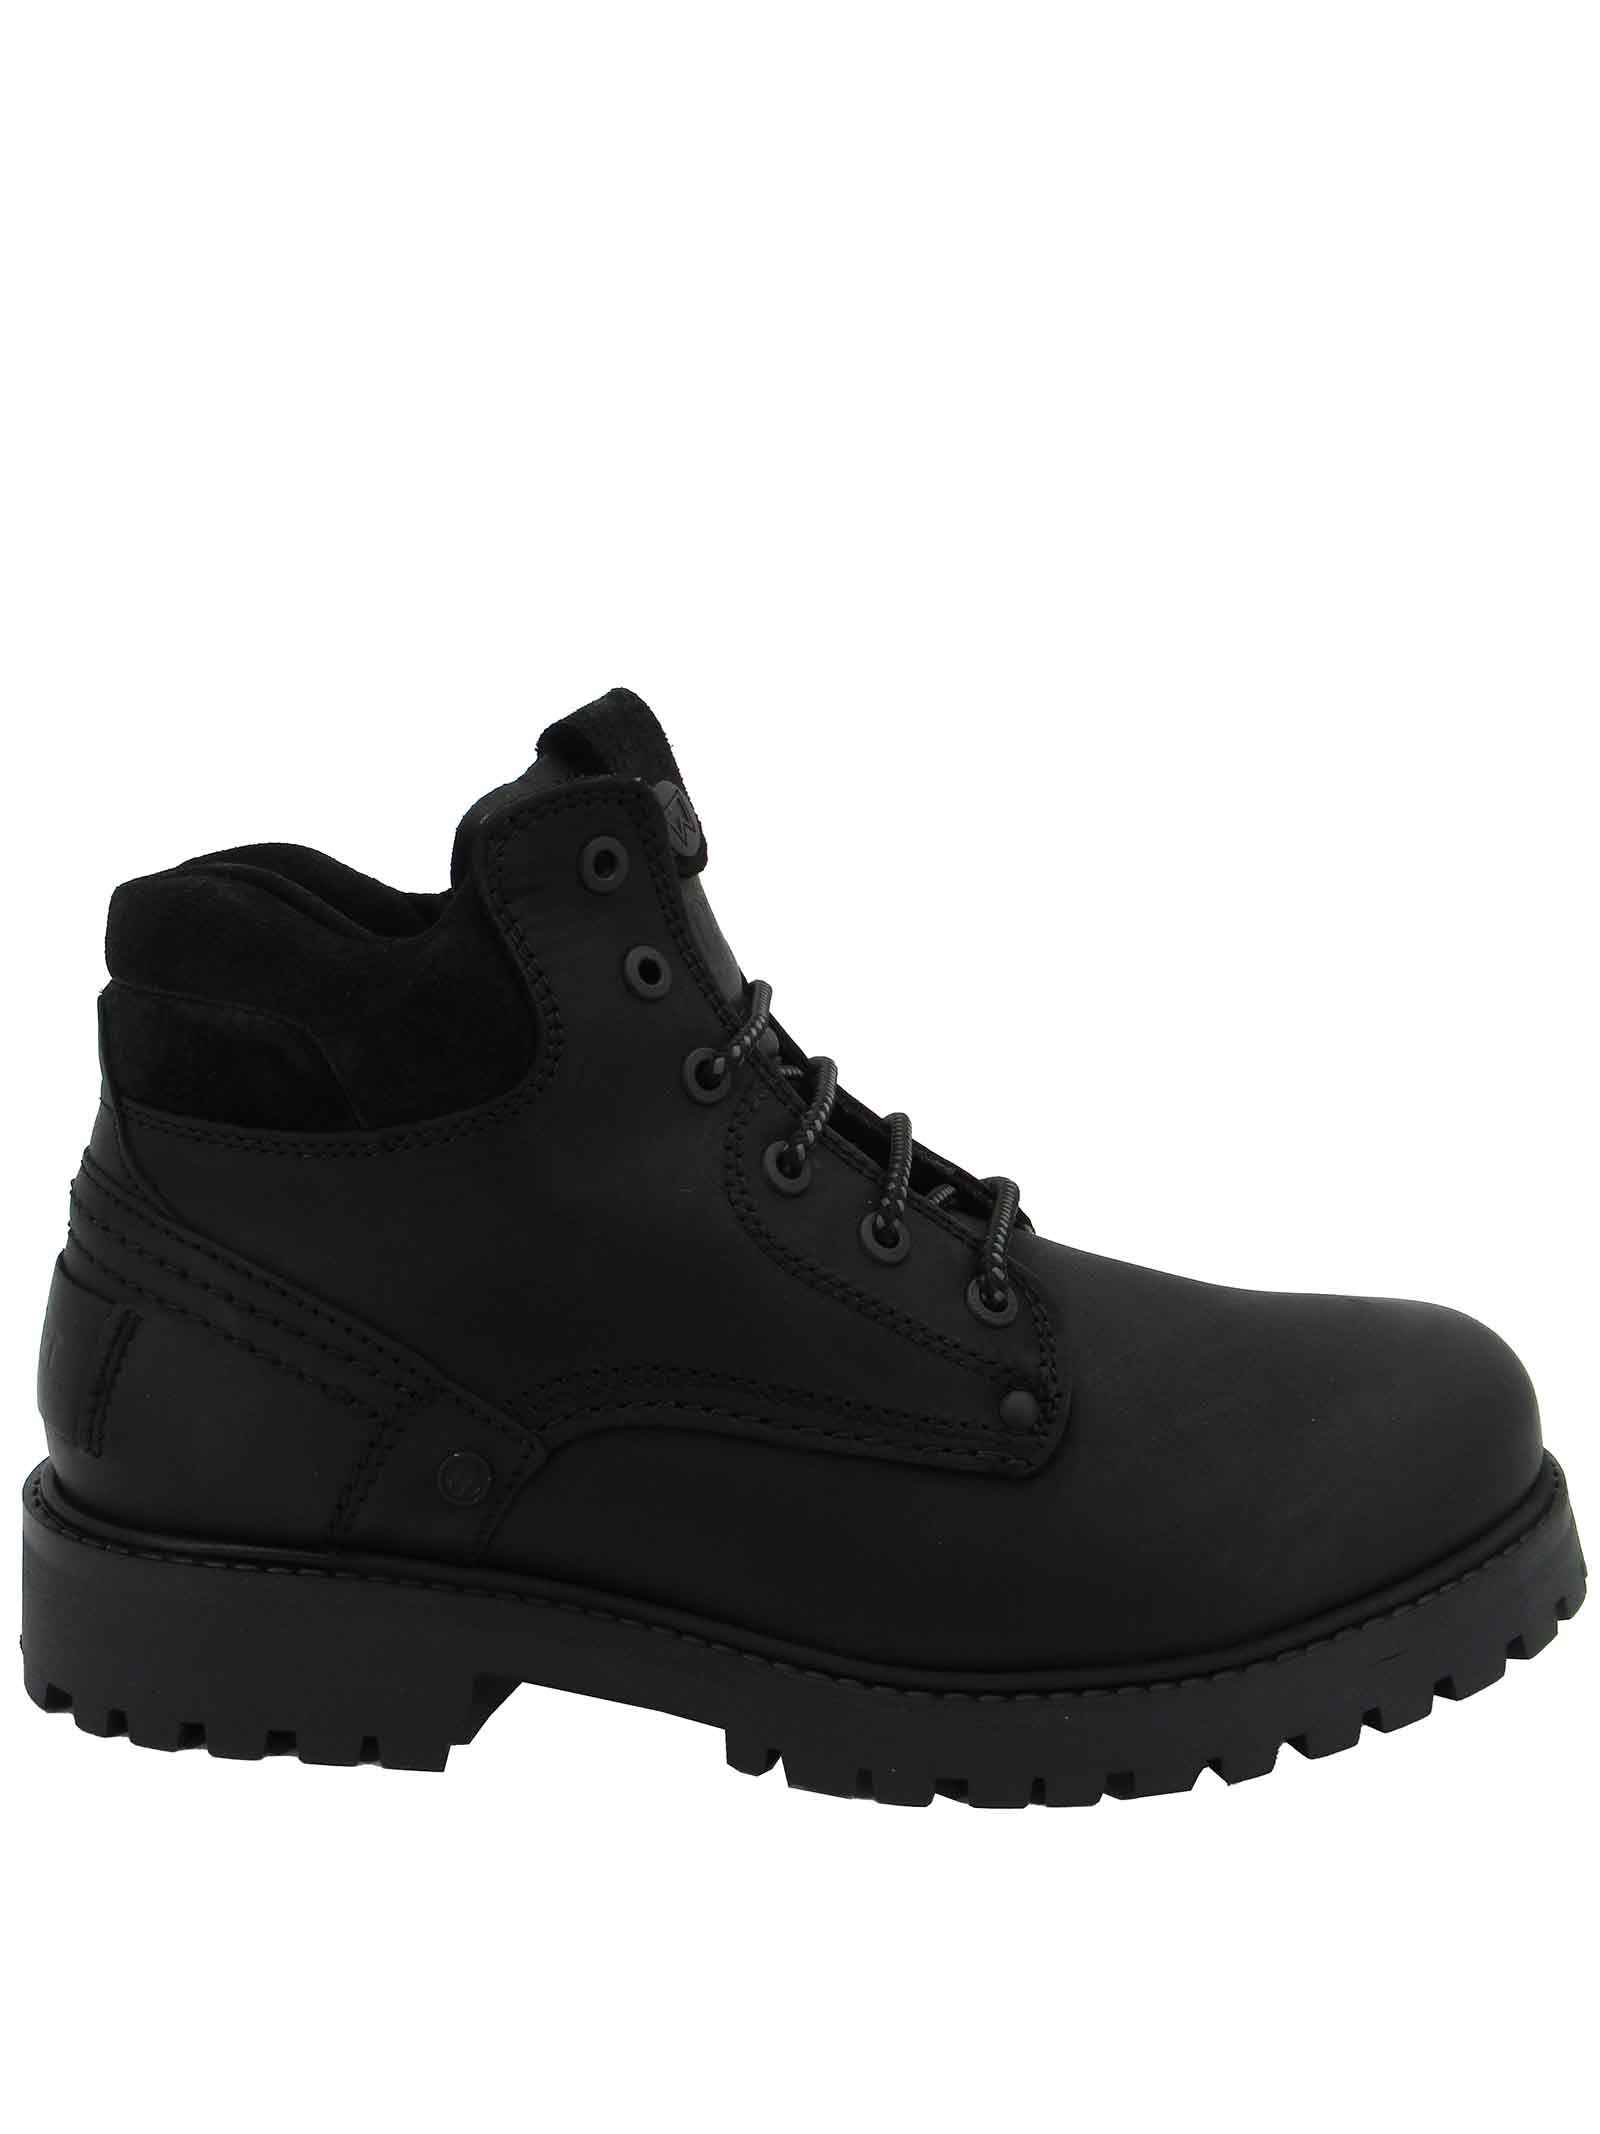 Men's Shoes Boots Yuma Laced Amphibian boots in Black Leather with Rubber Sole Tank Wrangler | Ankle Boots | WM12000A062